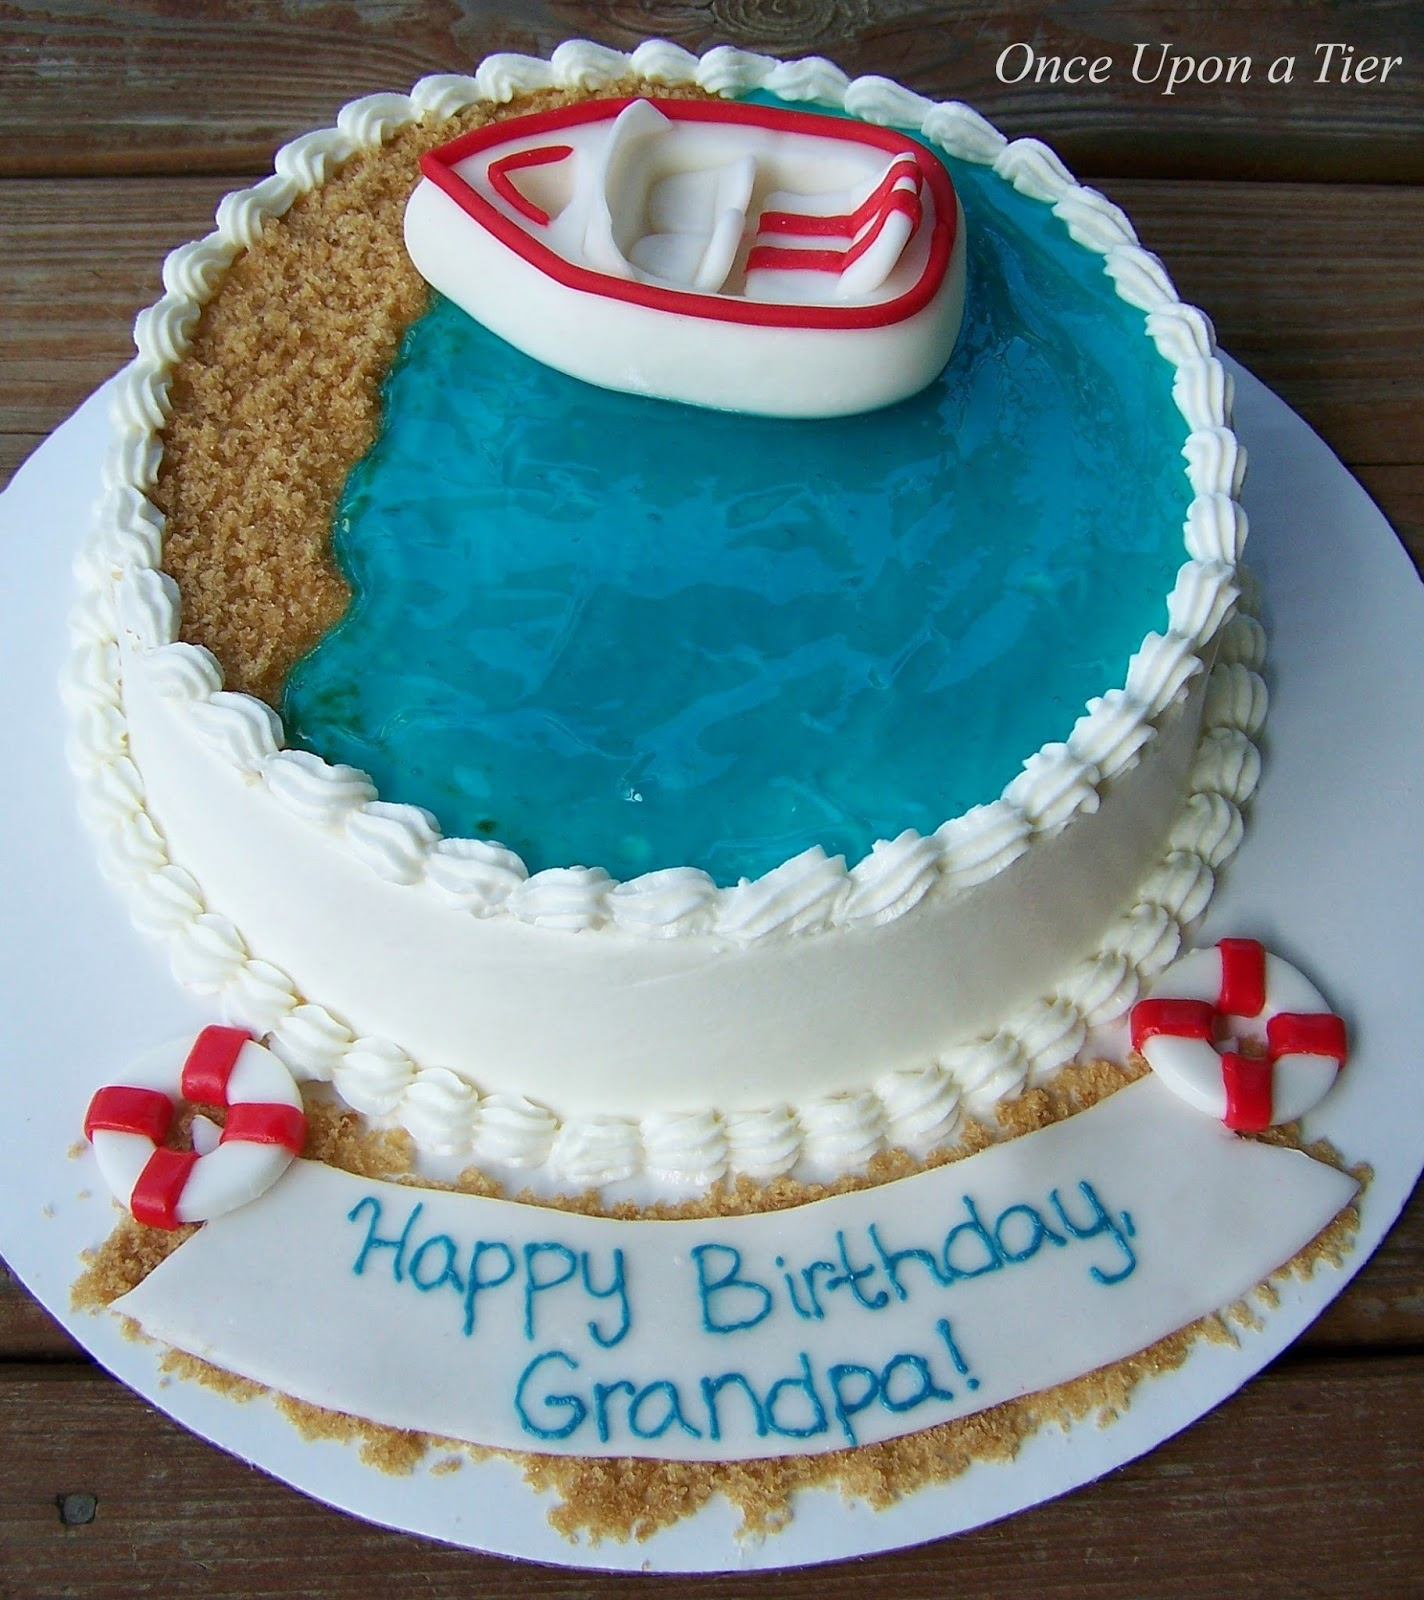 Once Upon A Tier Grandpas Birthday Cake